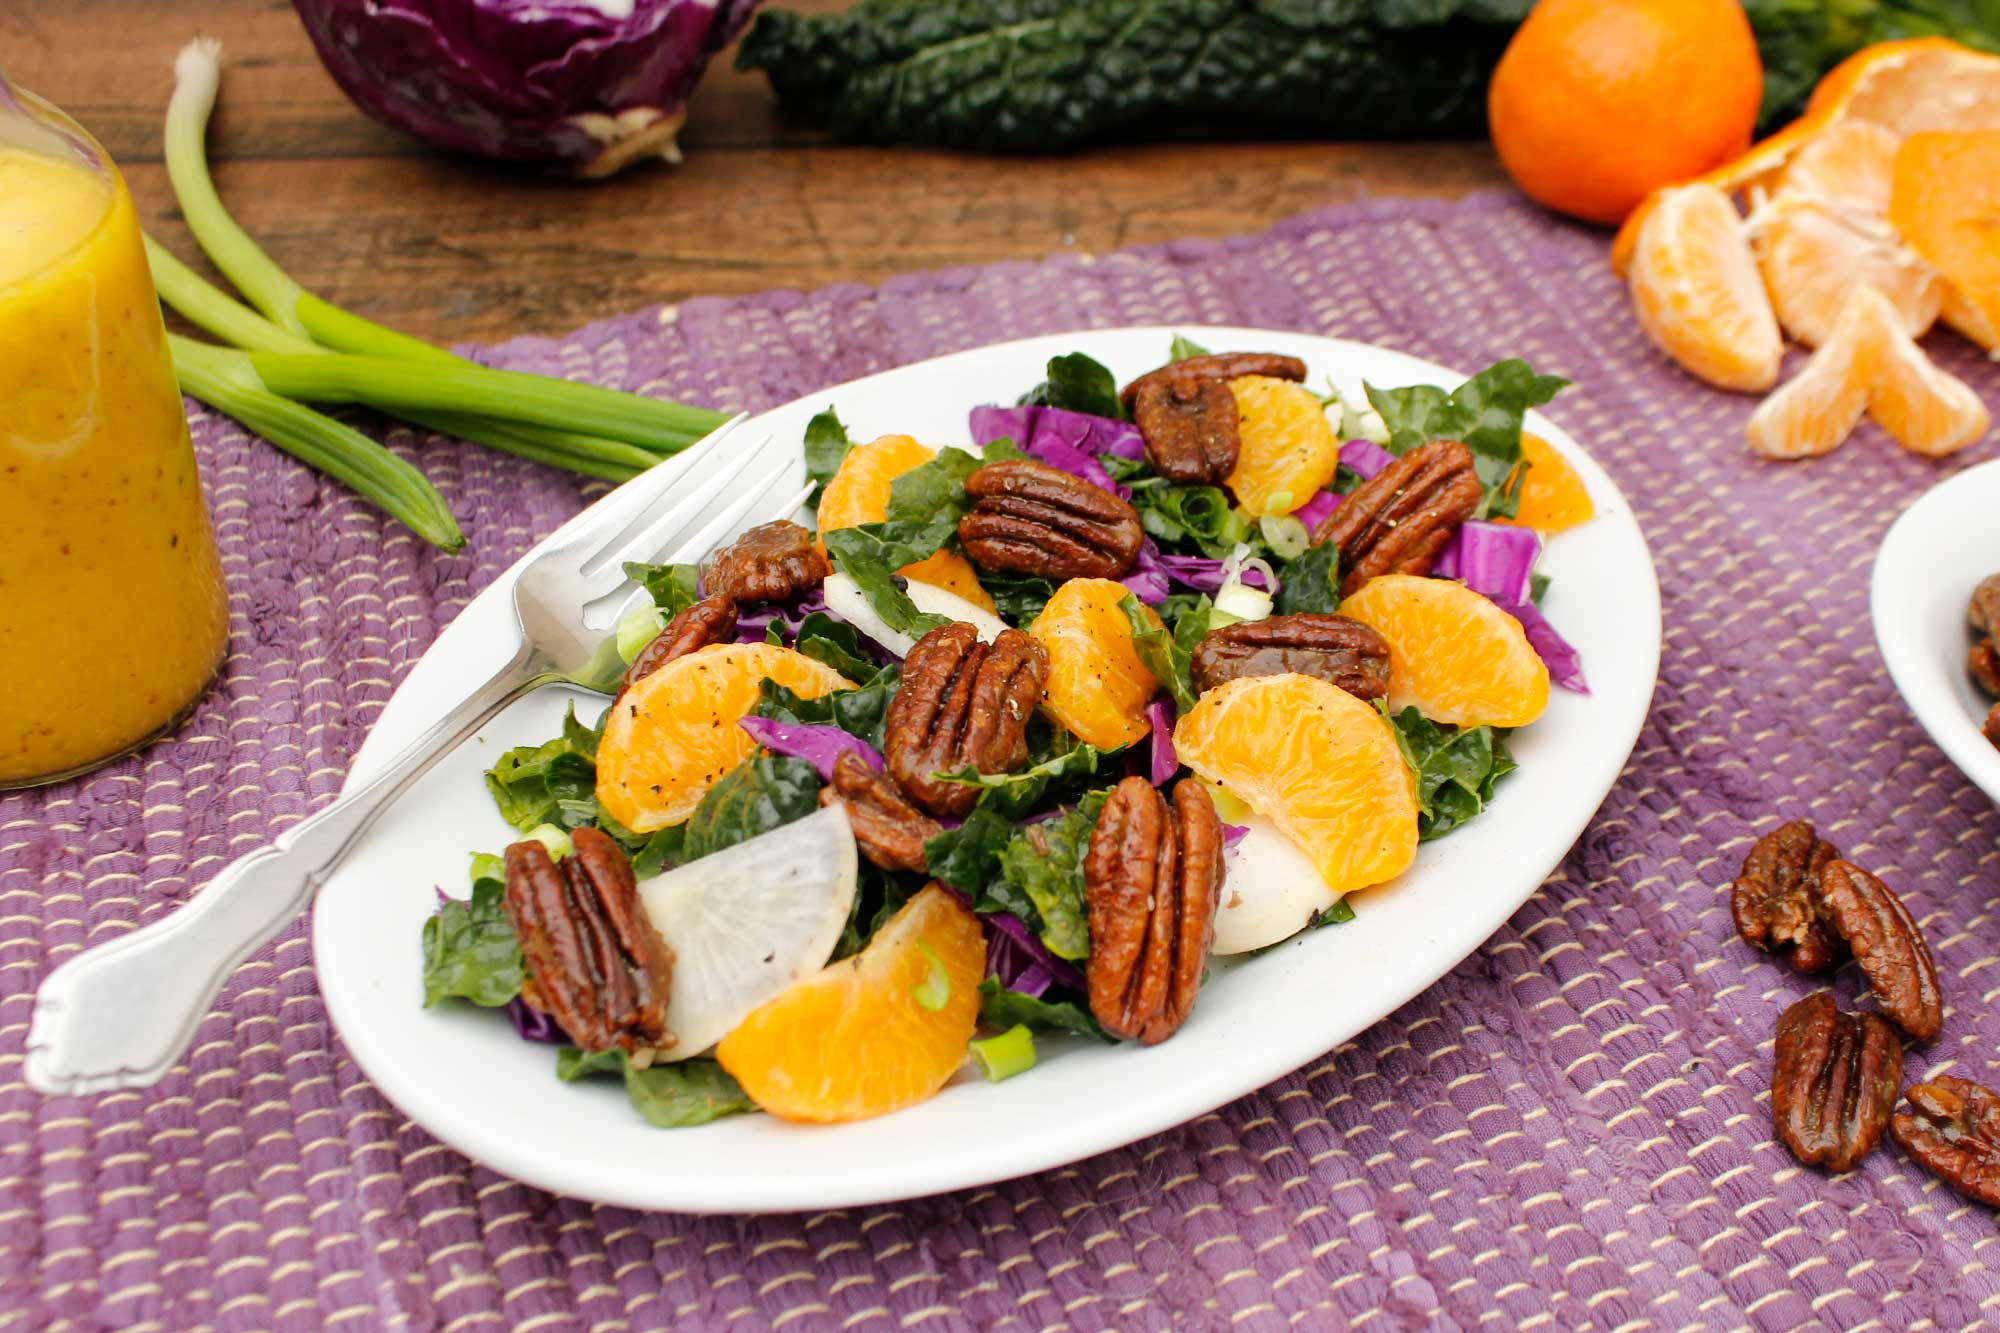 Mandarin Orange and Kale Salad with Candied Pecans